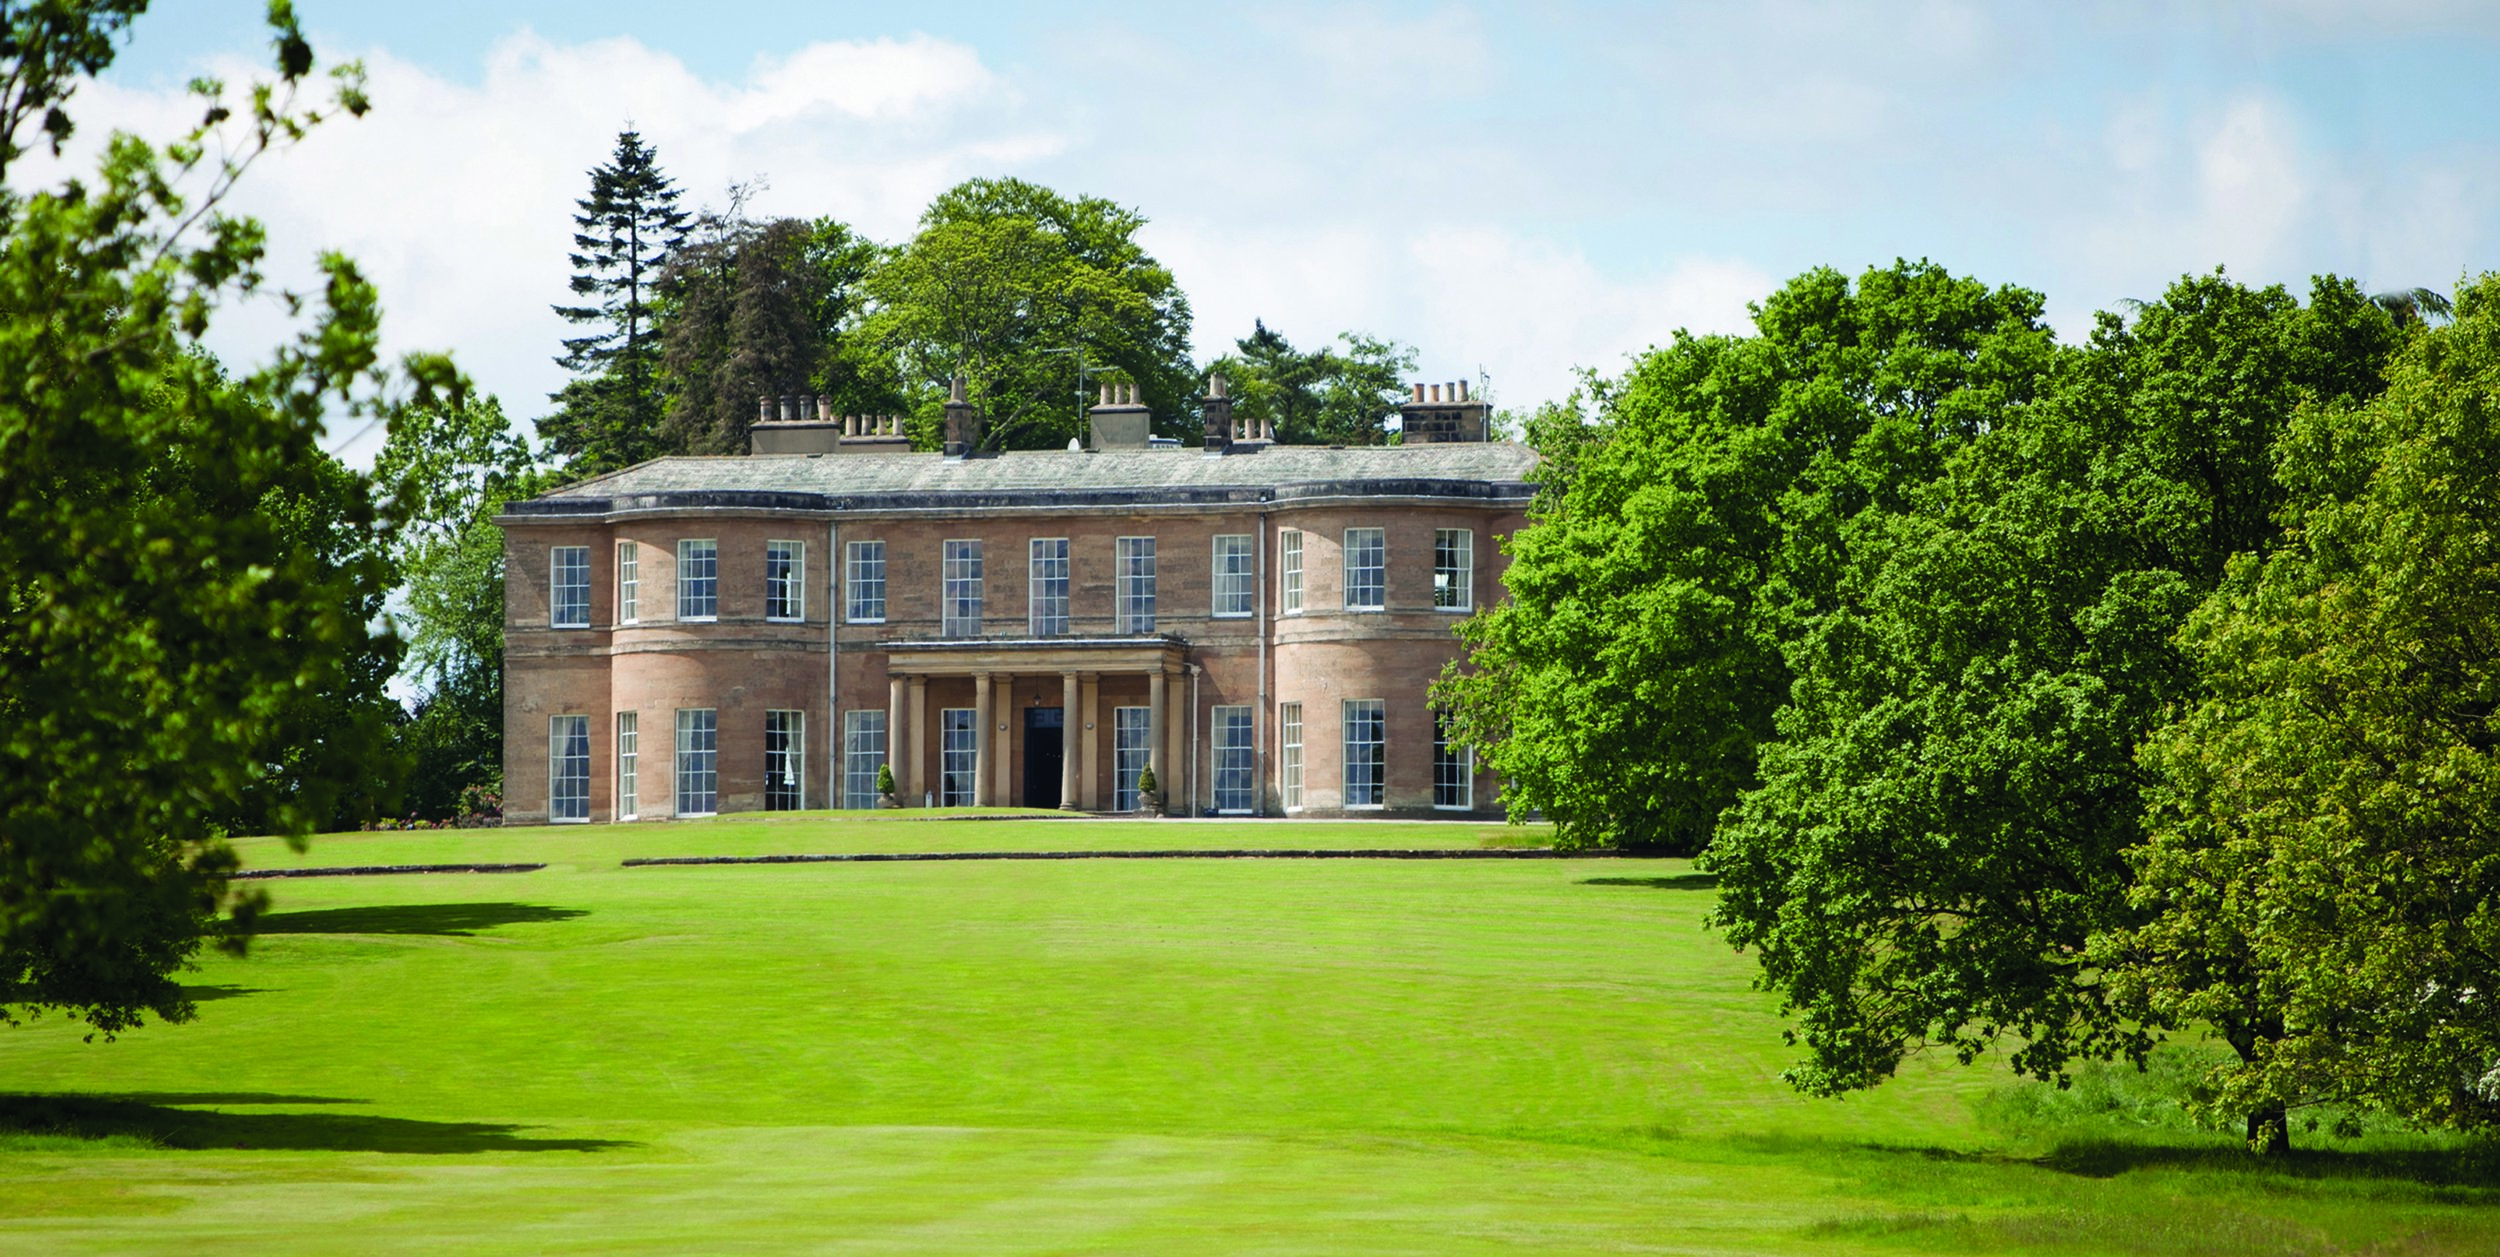 Award-winning Rudding Park Hotel & Spa